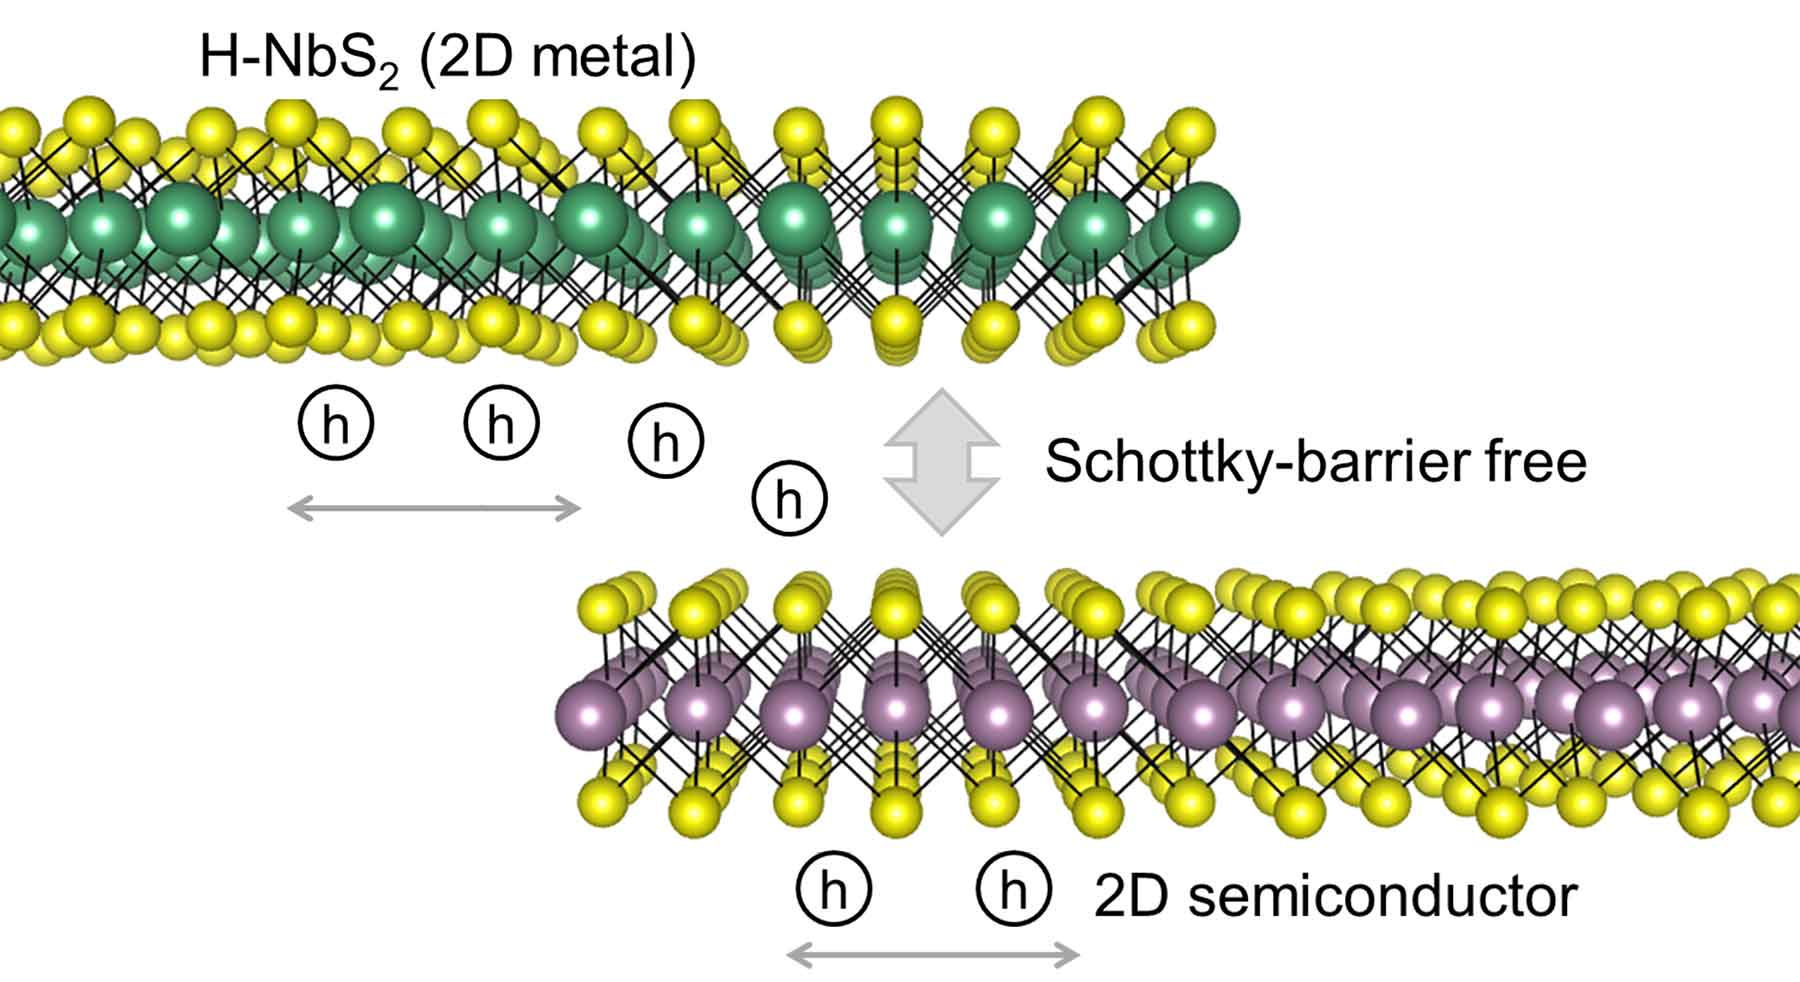 Drawing illustrates that a two-dimensional metal